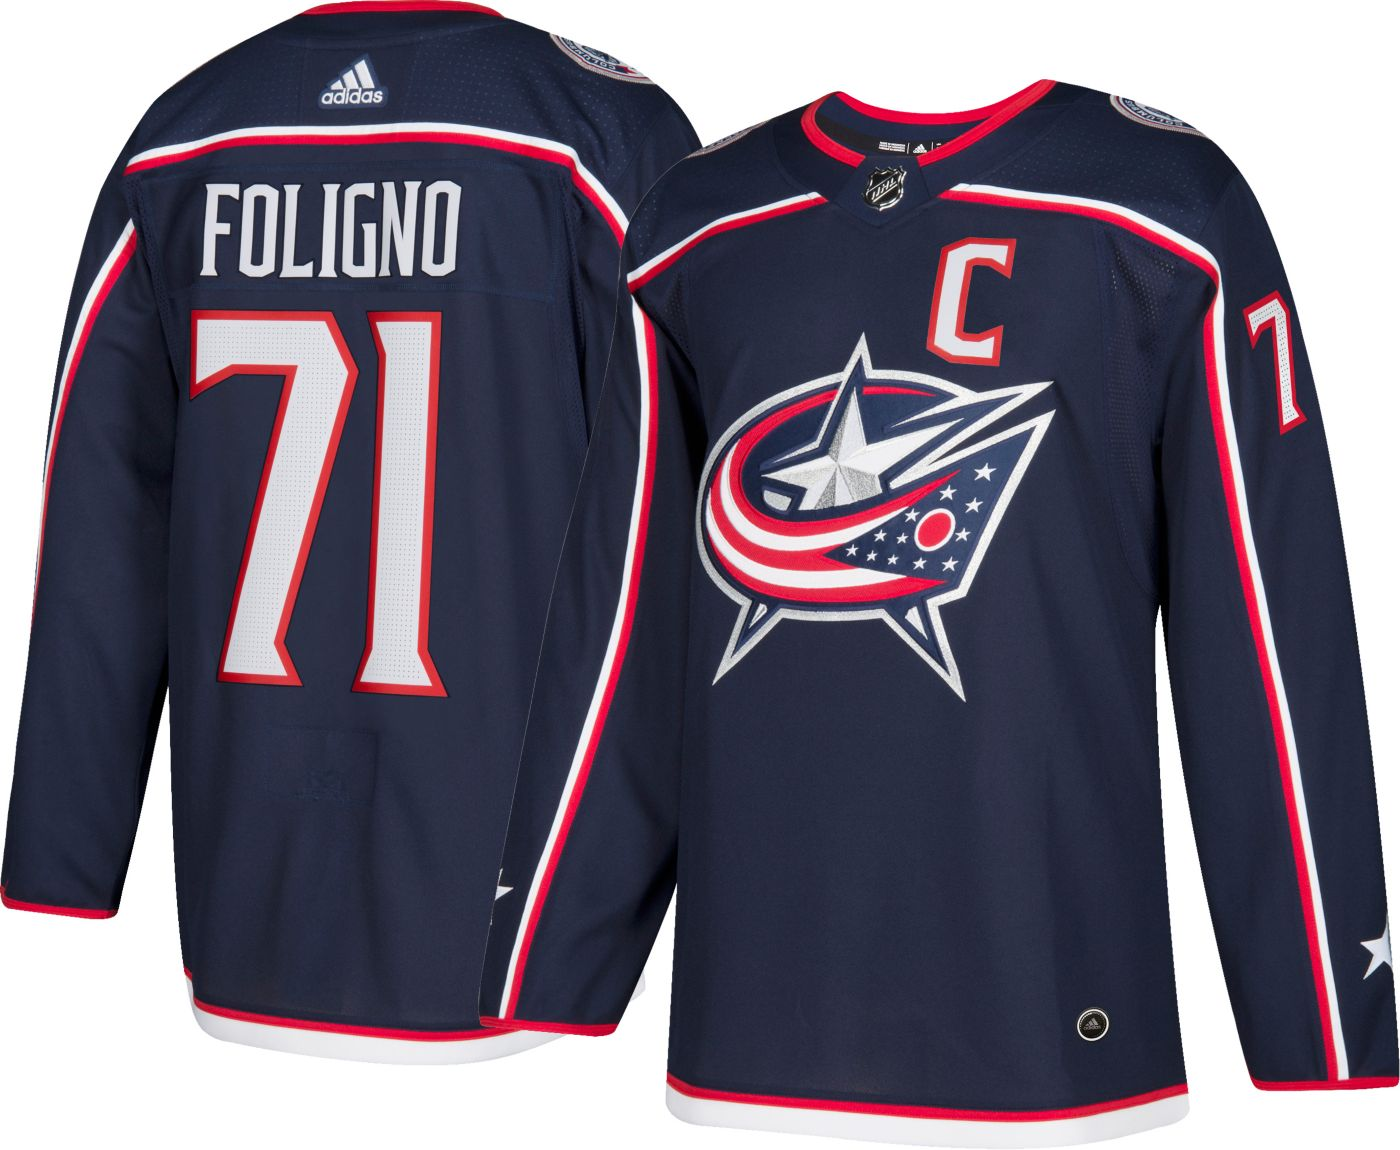 adidas Men's Columbus Blue Jackets Nick Foligno #71 Authentic Pro Home Jersey